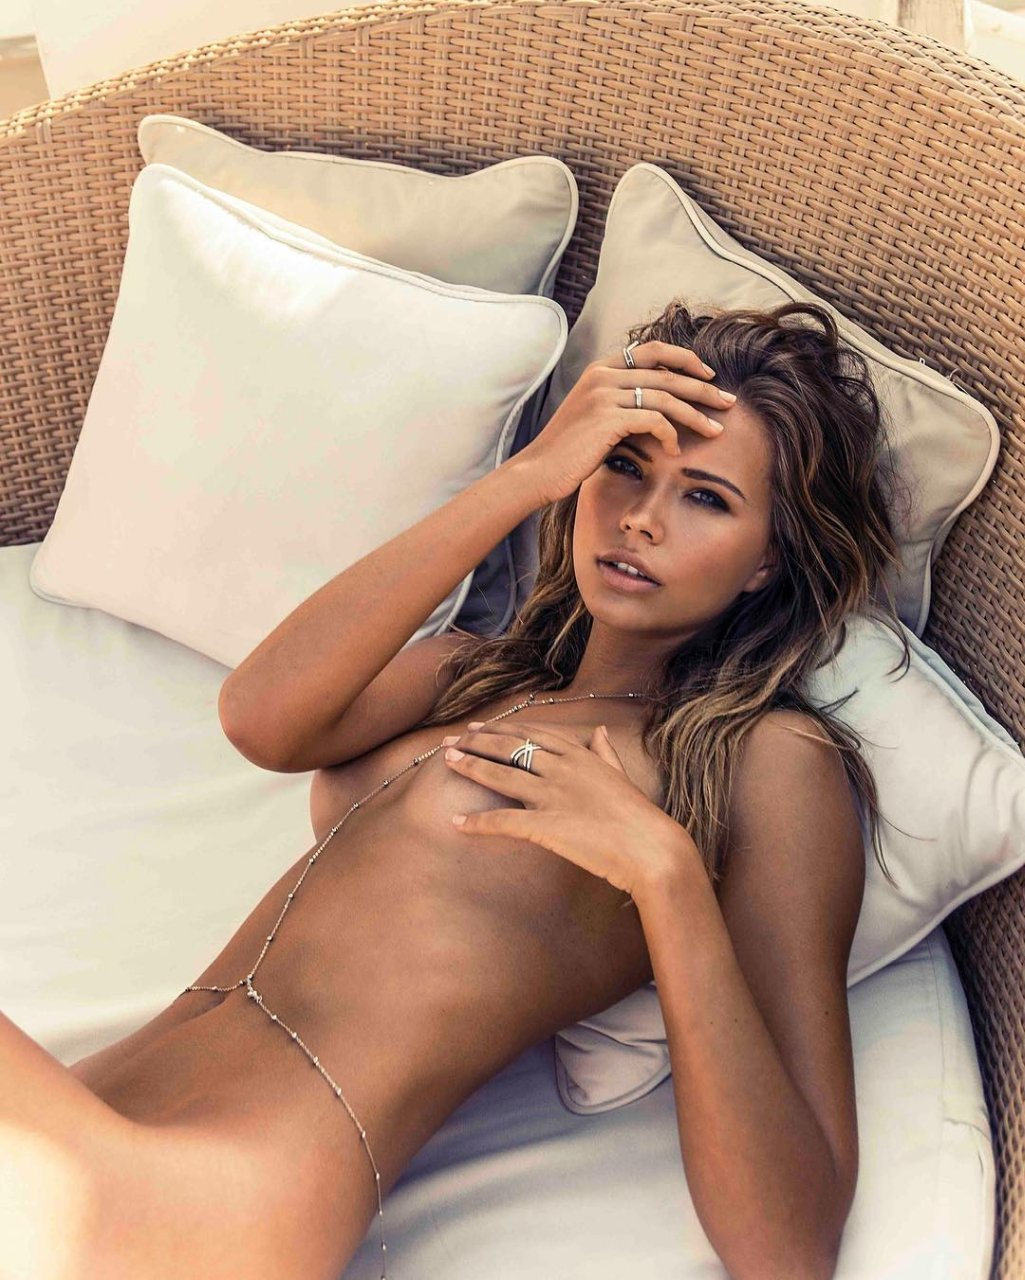 Sahara ray and justin bieber naked